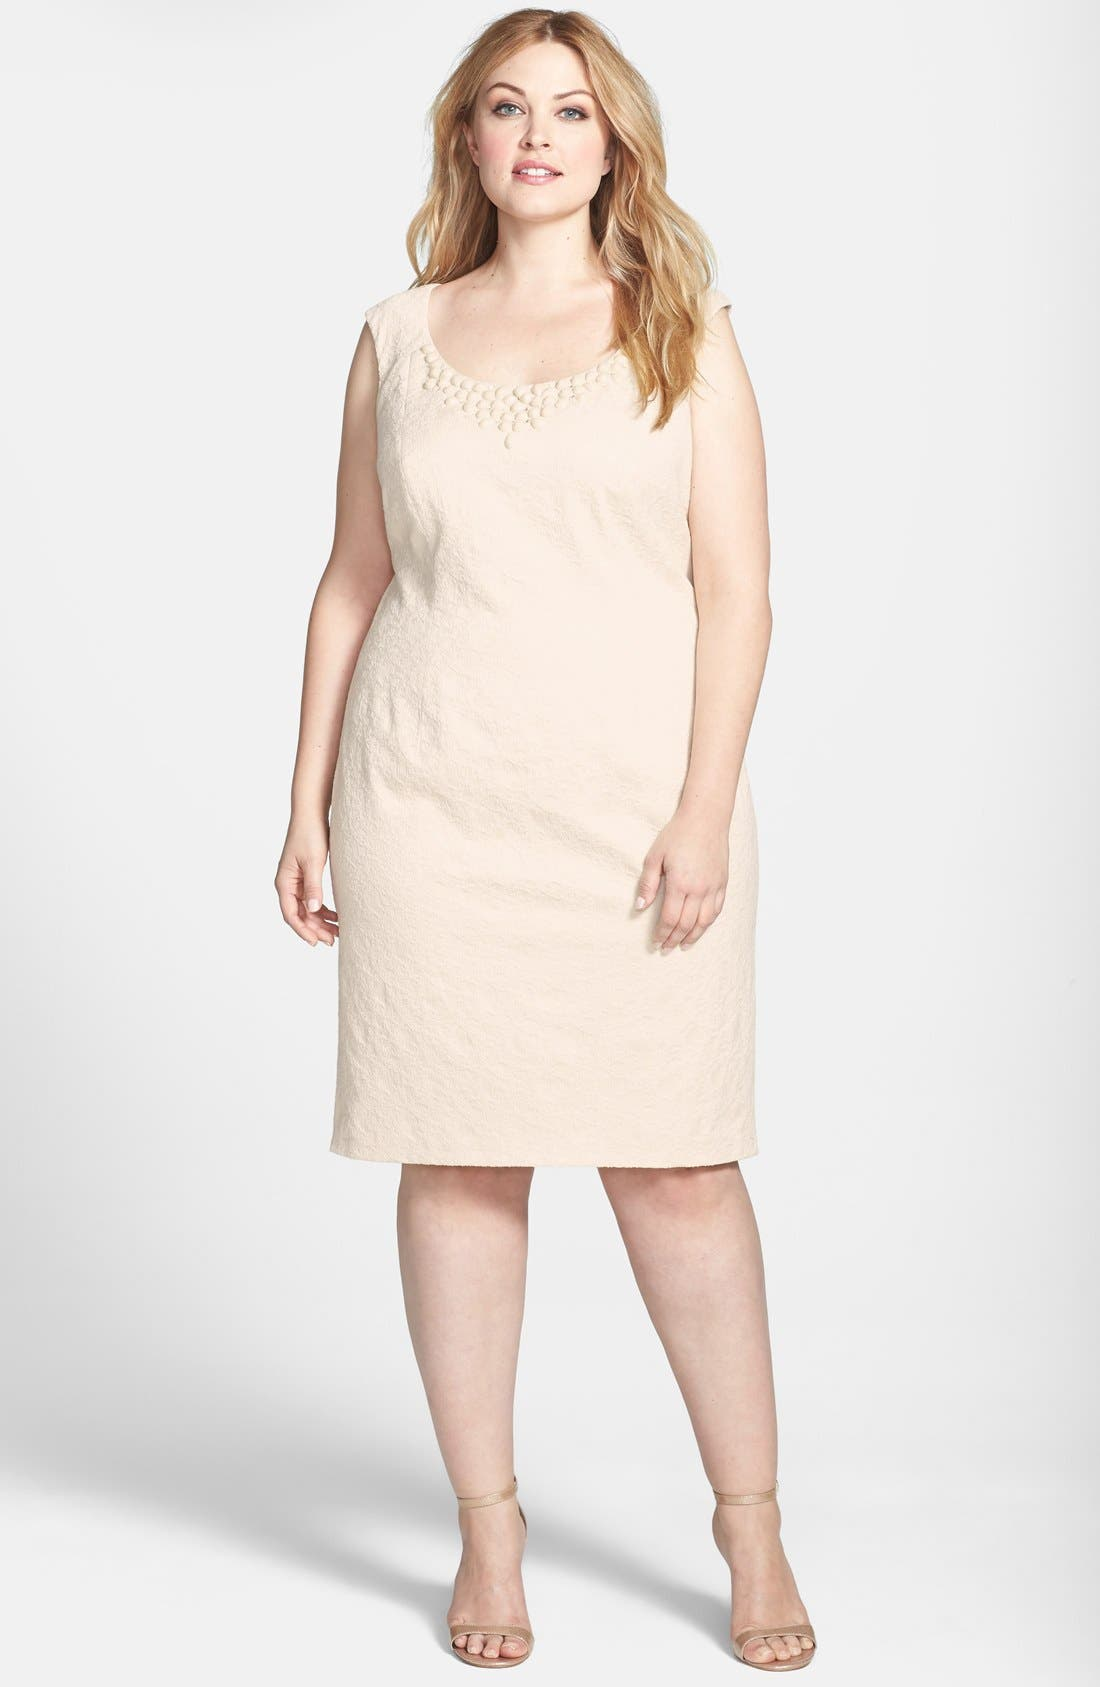 Alternate Image 1 Selected - Adrianna Papell Embellished Neckline Jacquard Sheath Dress (Plus Size)